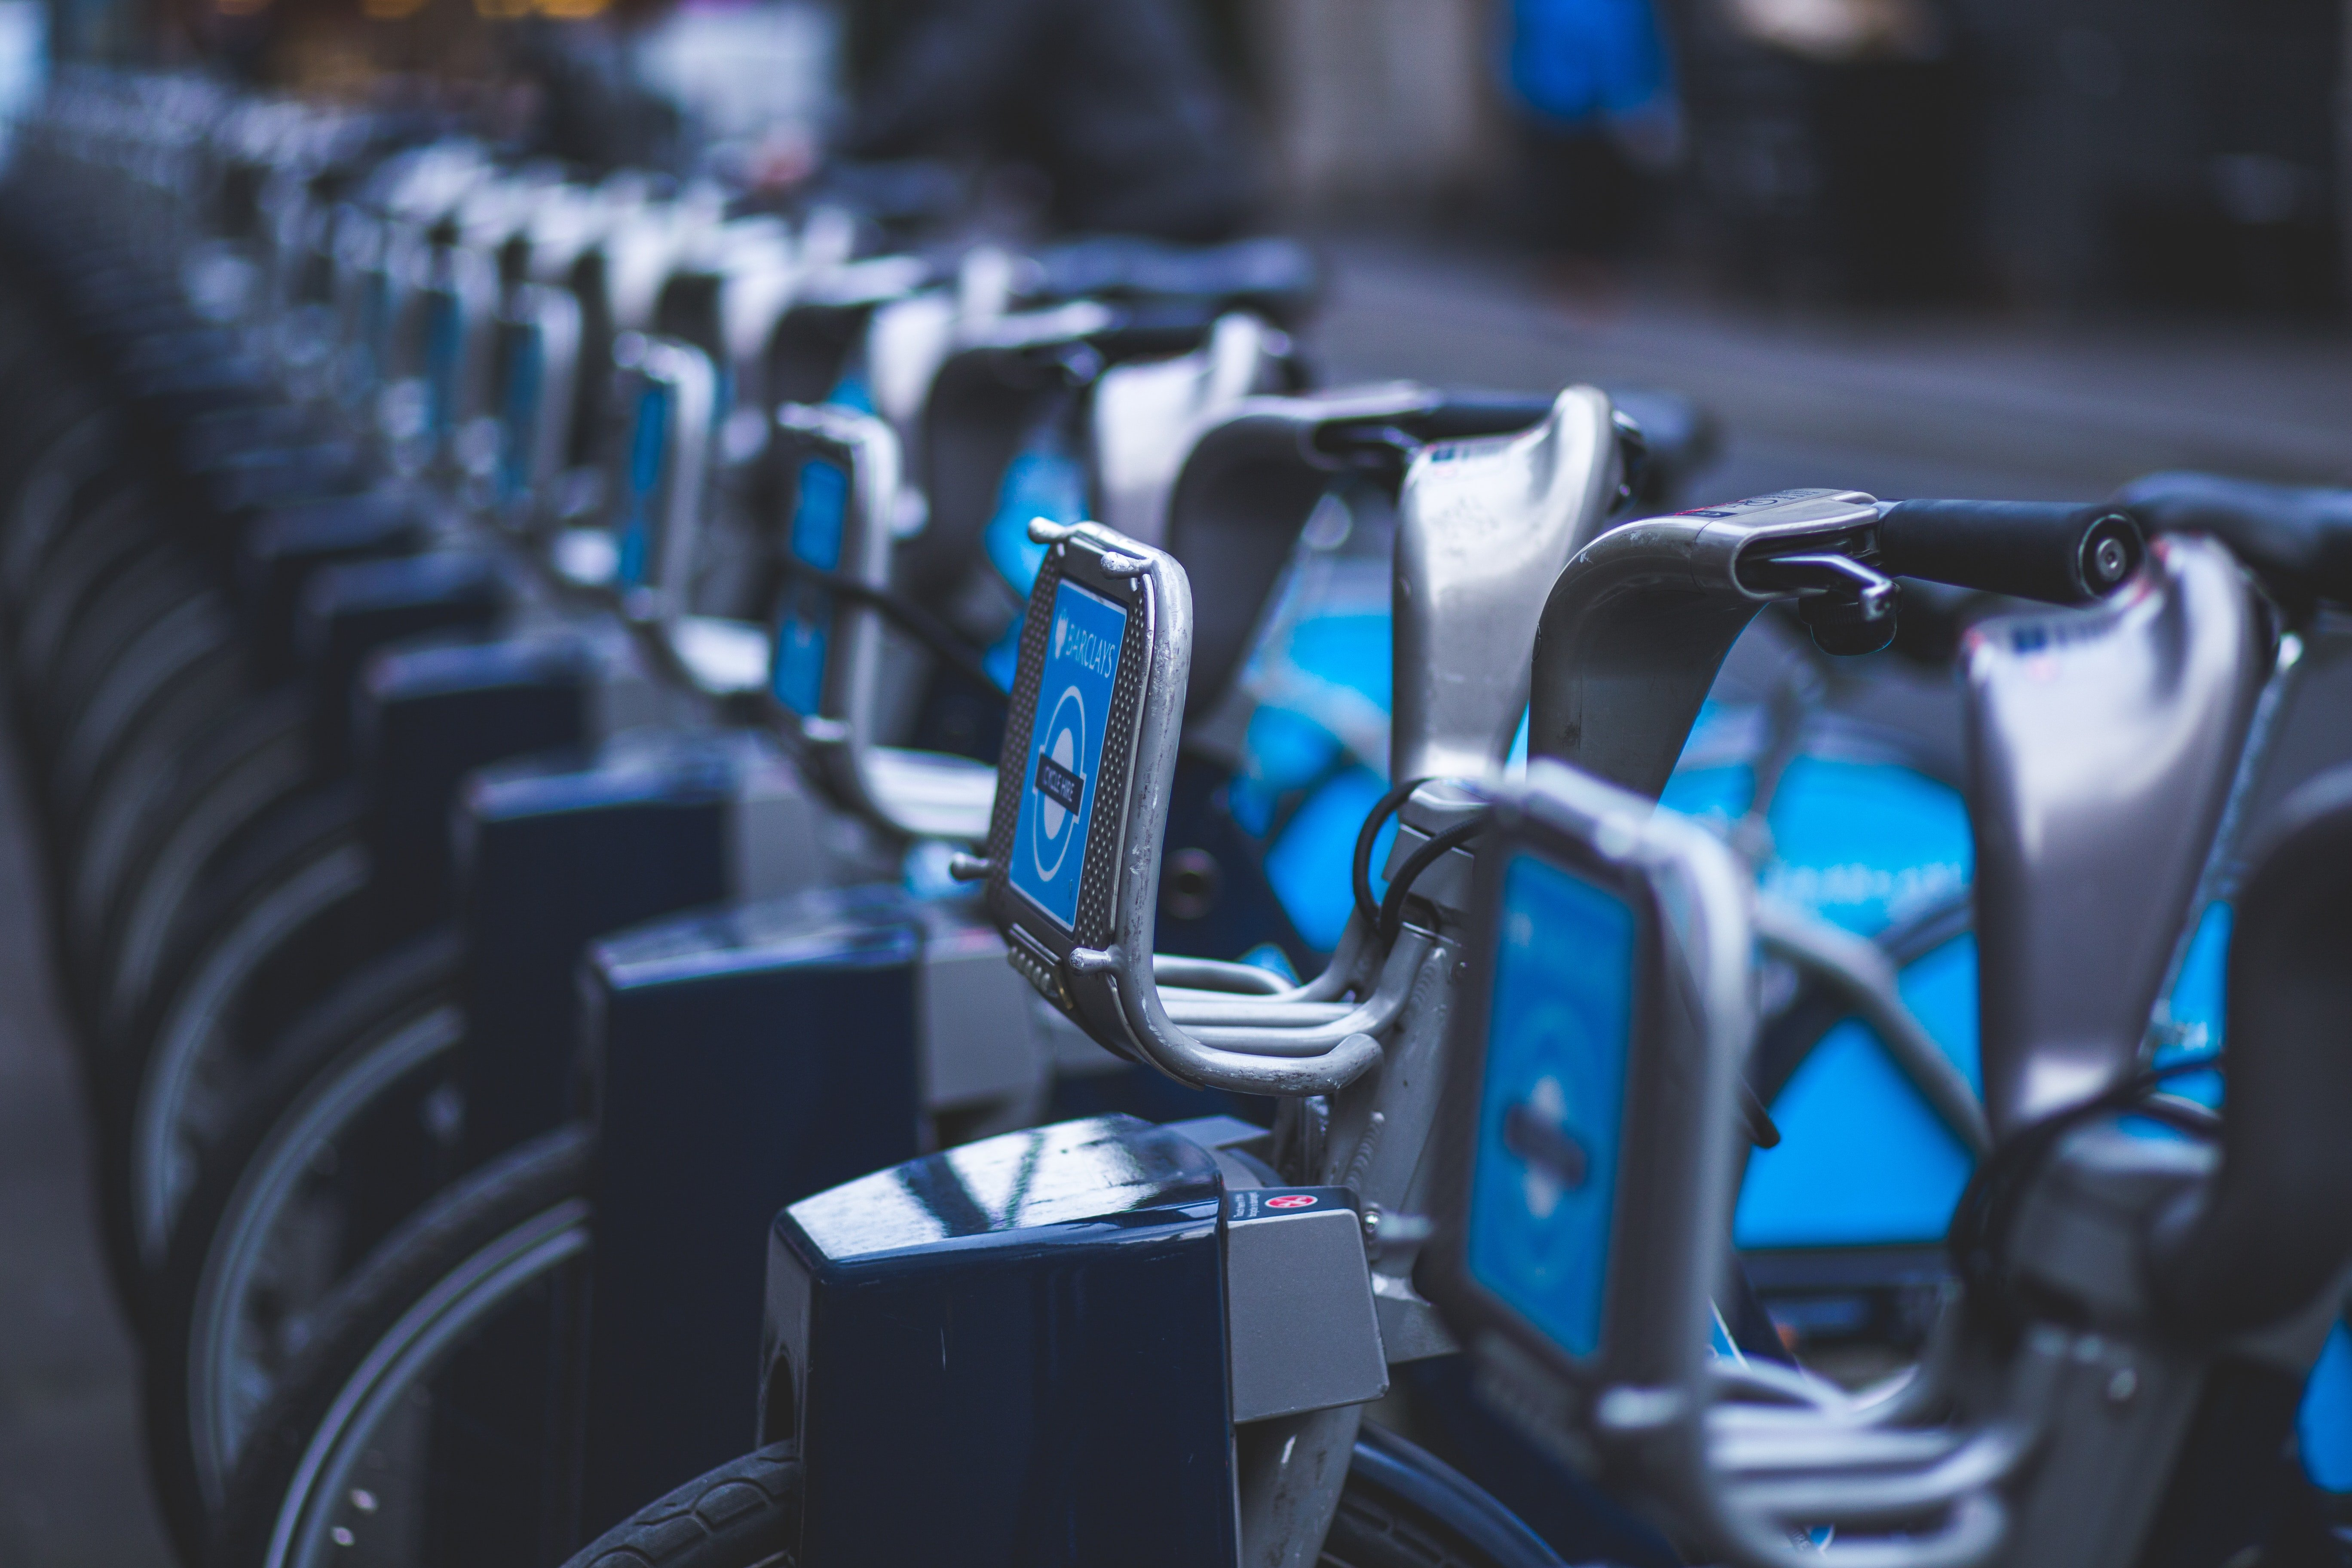 barclays-cycle-hire-bicycles-bikes-34646